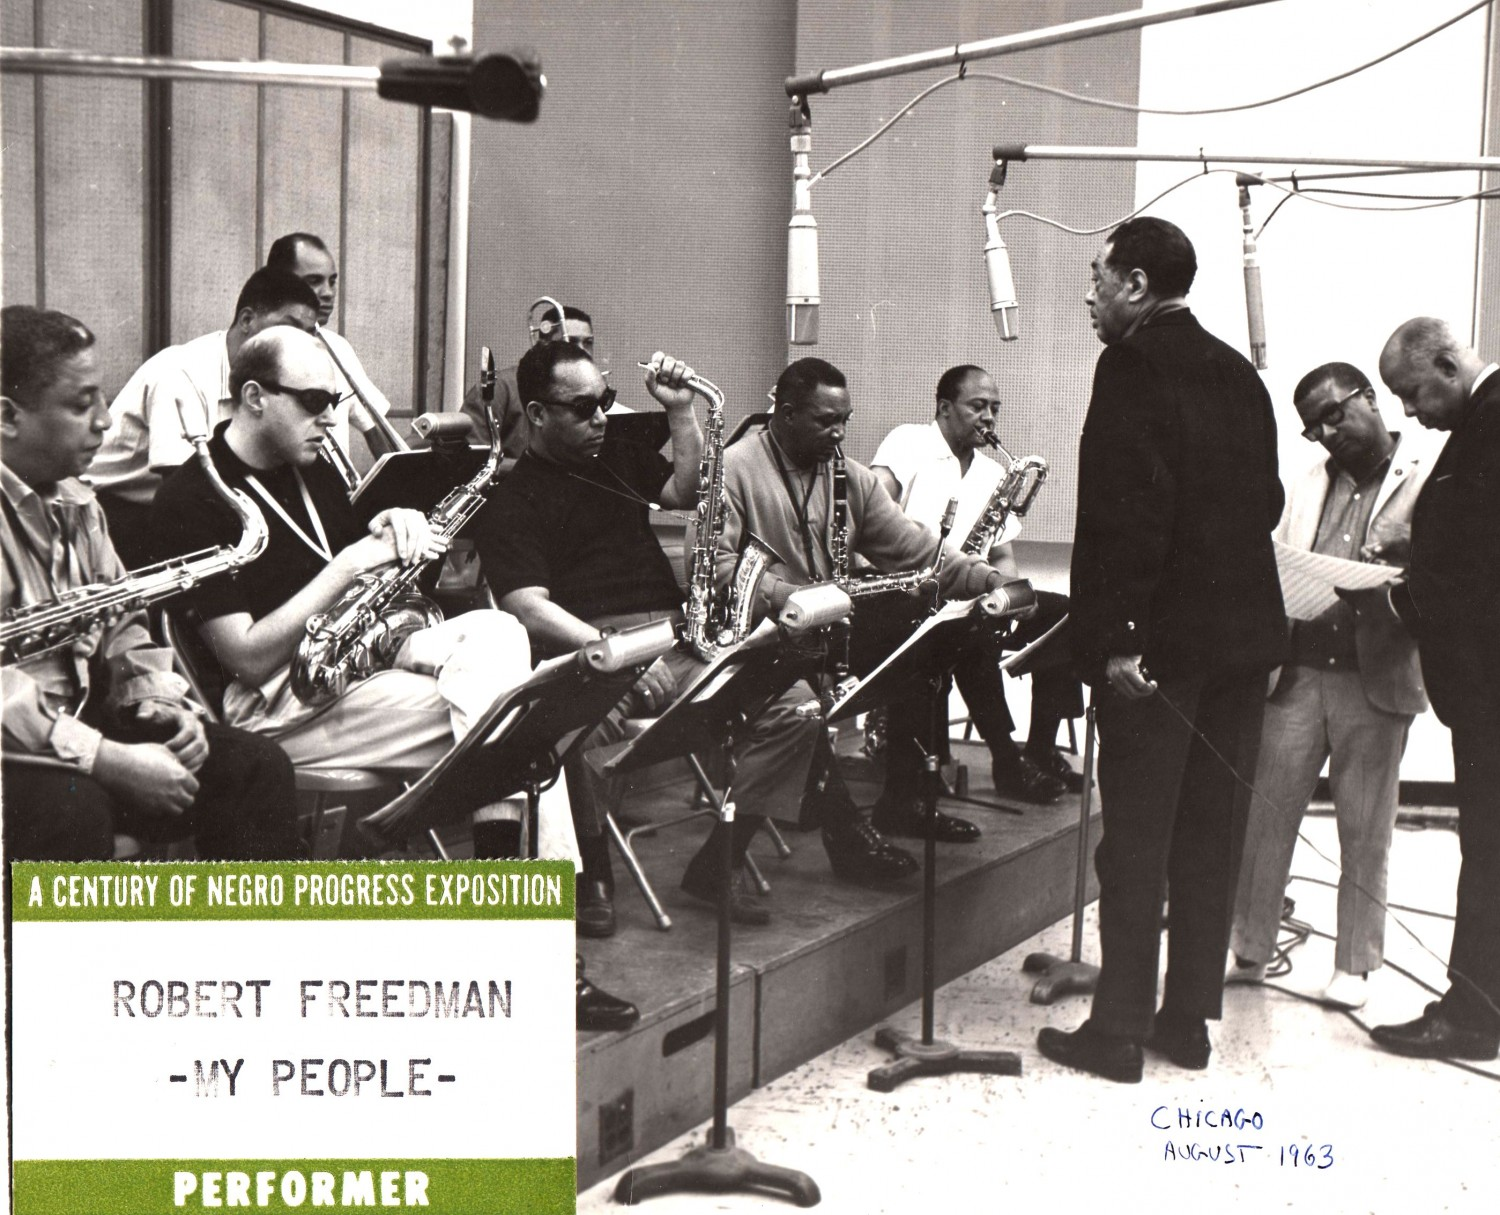 p. 125, Une section de saxes inédite pour l'enregistrement de My People, Chicago, août 1963 : Harold Ashby (ts), Bob Freedman (ts), Russell Procope (as), Rudy Powell (as) et Pete Clarke (bar) ; faisant face, le maestro, Billy Strayhorn et Tom Whaley., X, Coll. Bob Freedman